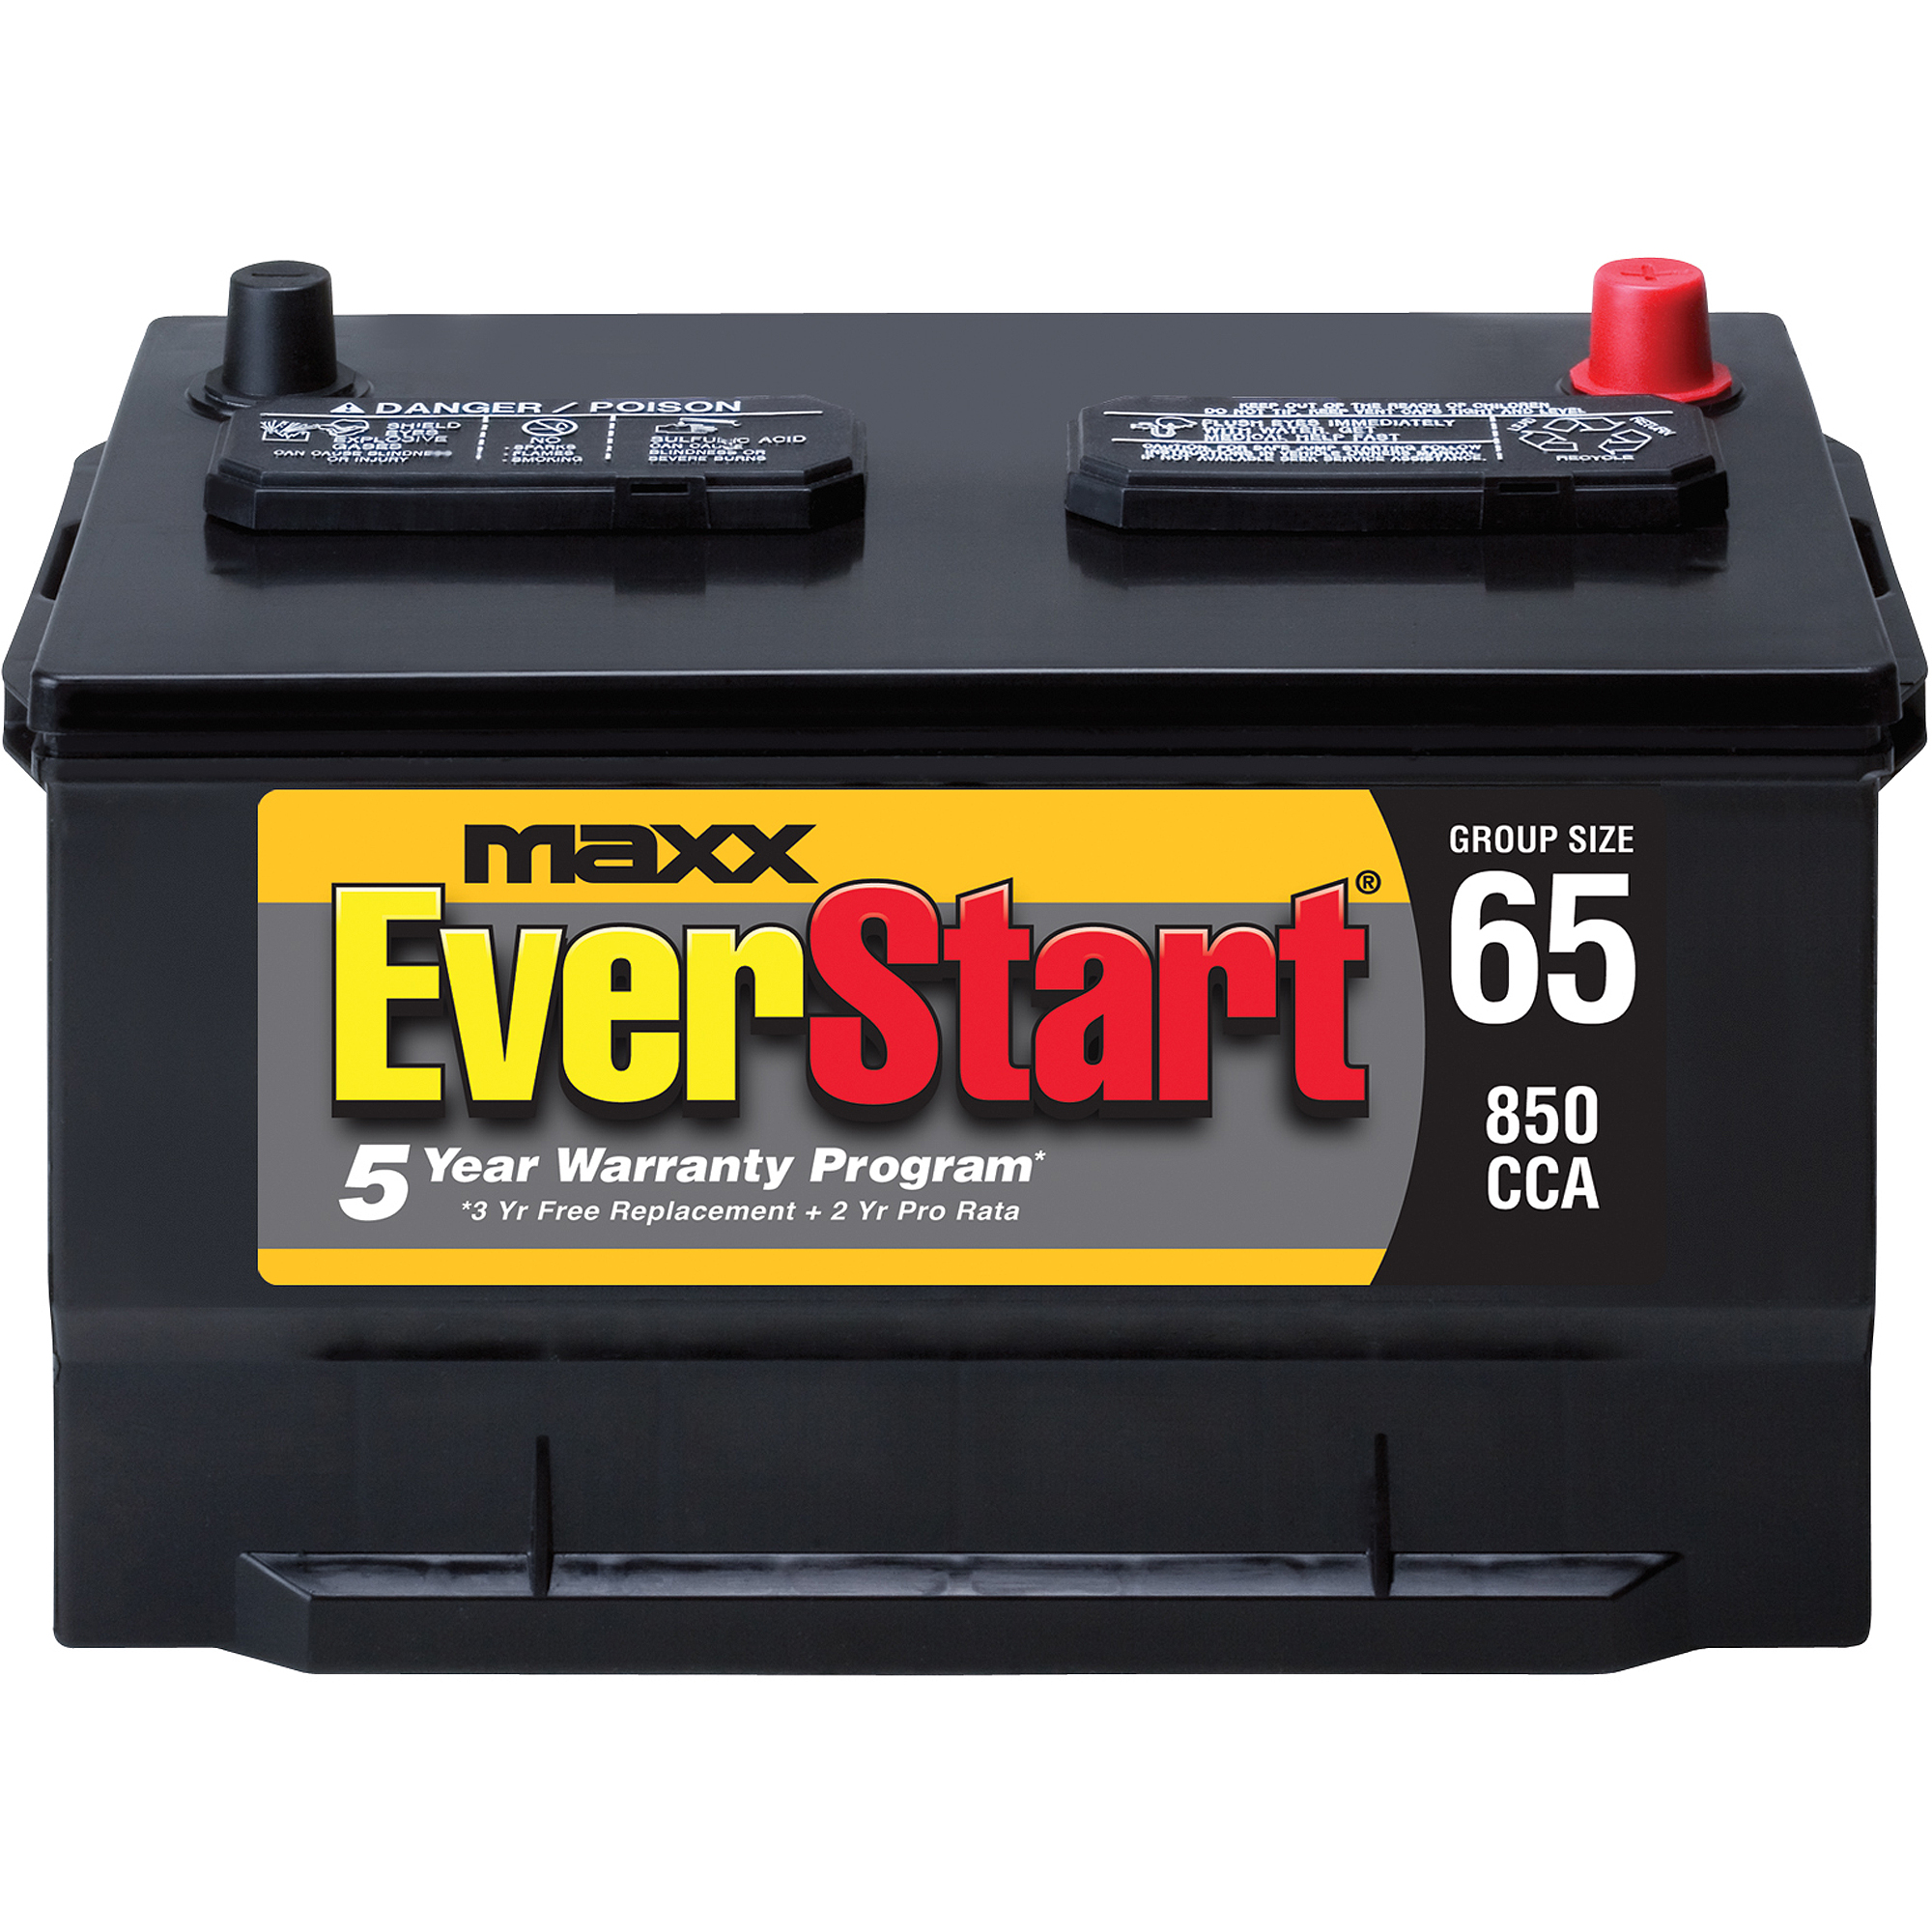 7037aaf3 7cf5 41ae 9078 b932baef2a1f_1.3d00becf0da2d7b16be51c49bbd8777e everstart maxx walmart com everstart battery charger wiring diagram at reclaimingppi.co